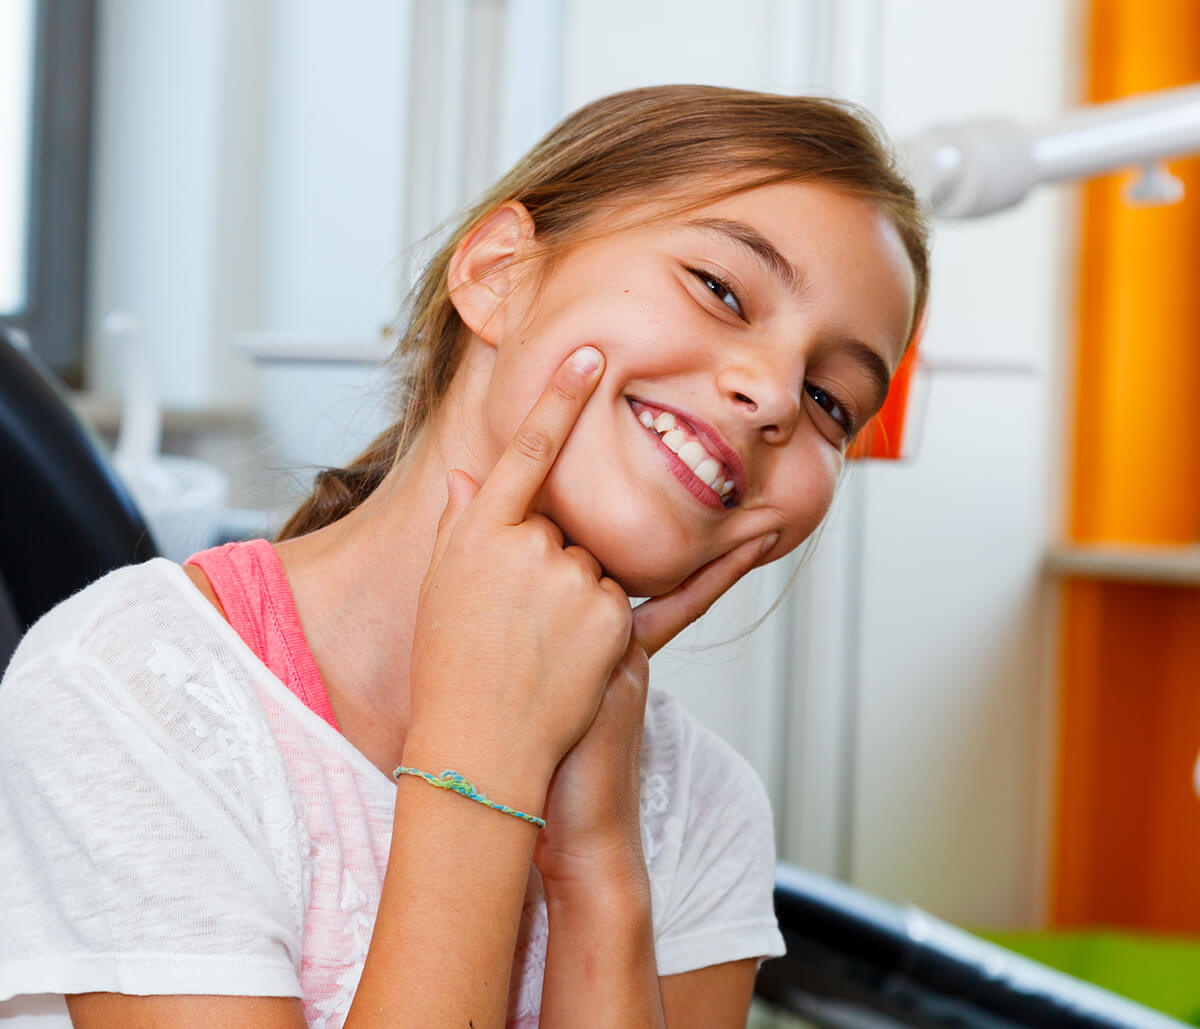 Stainless Steel Dental Crowns Benefits at Triad Pediatric Dentistry in Greensboro NC Area